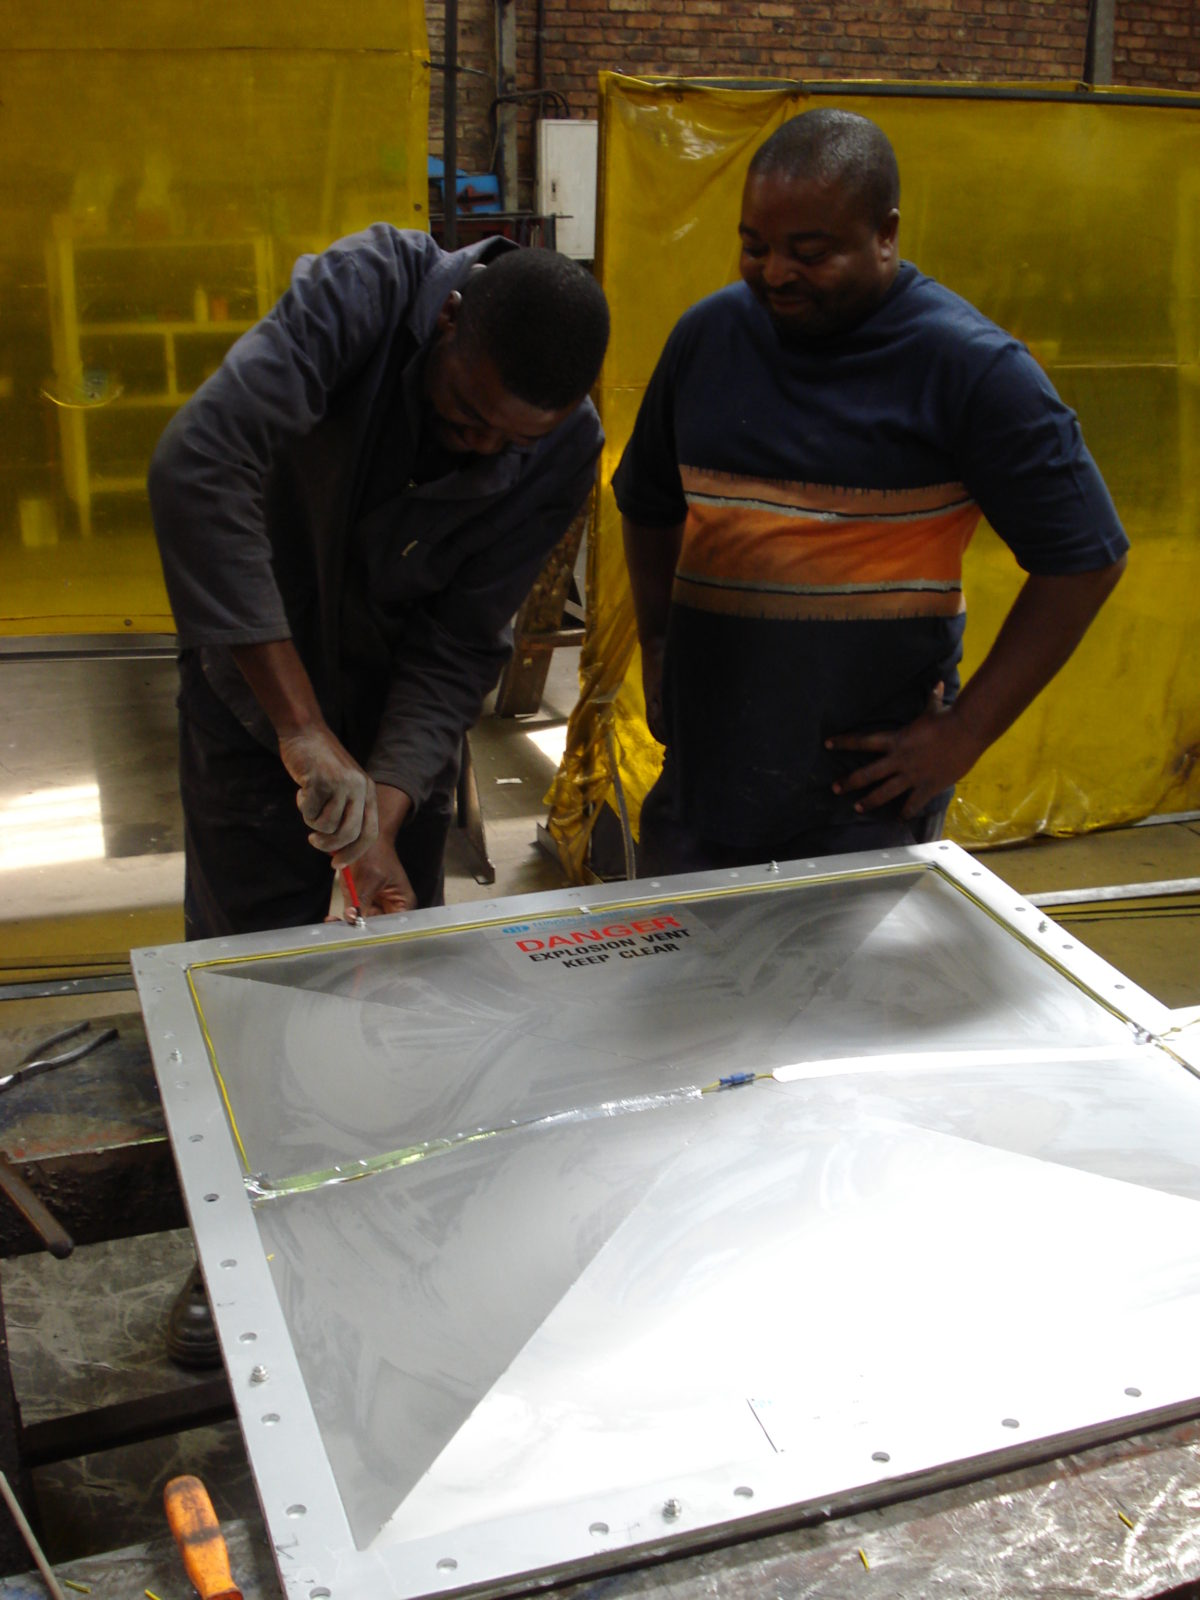 Assembly of Explosion Panels